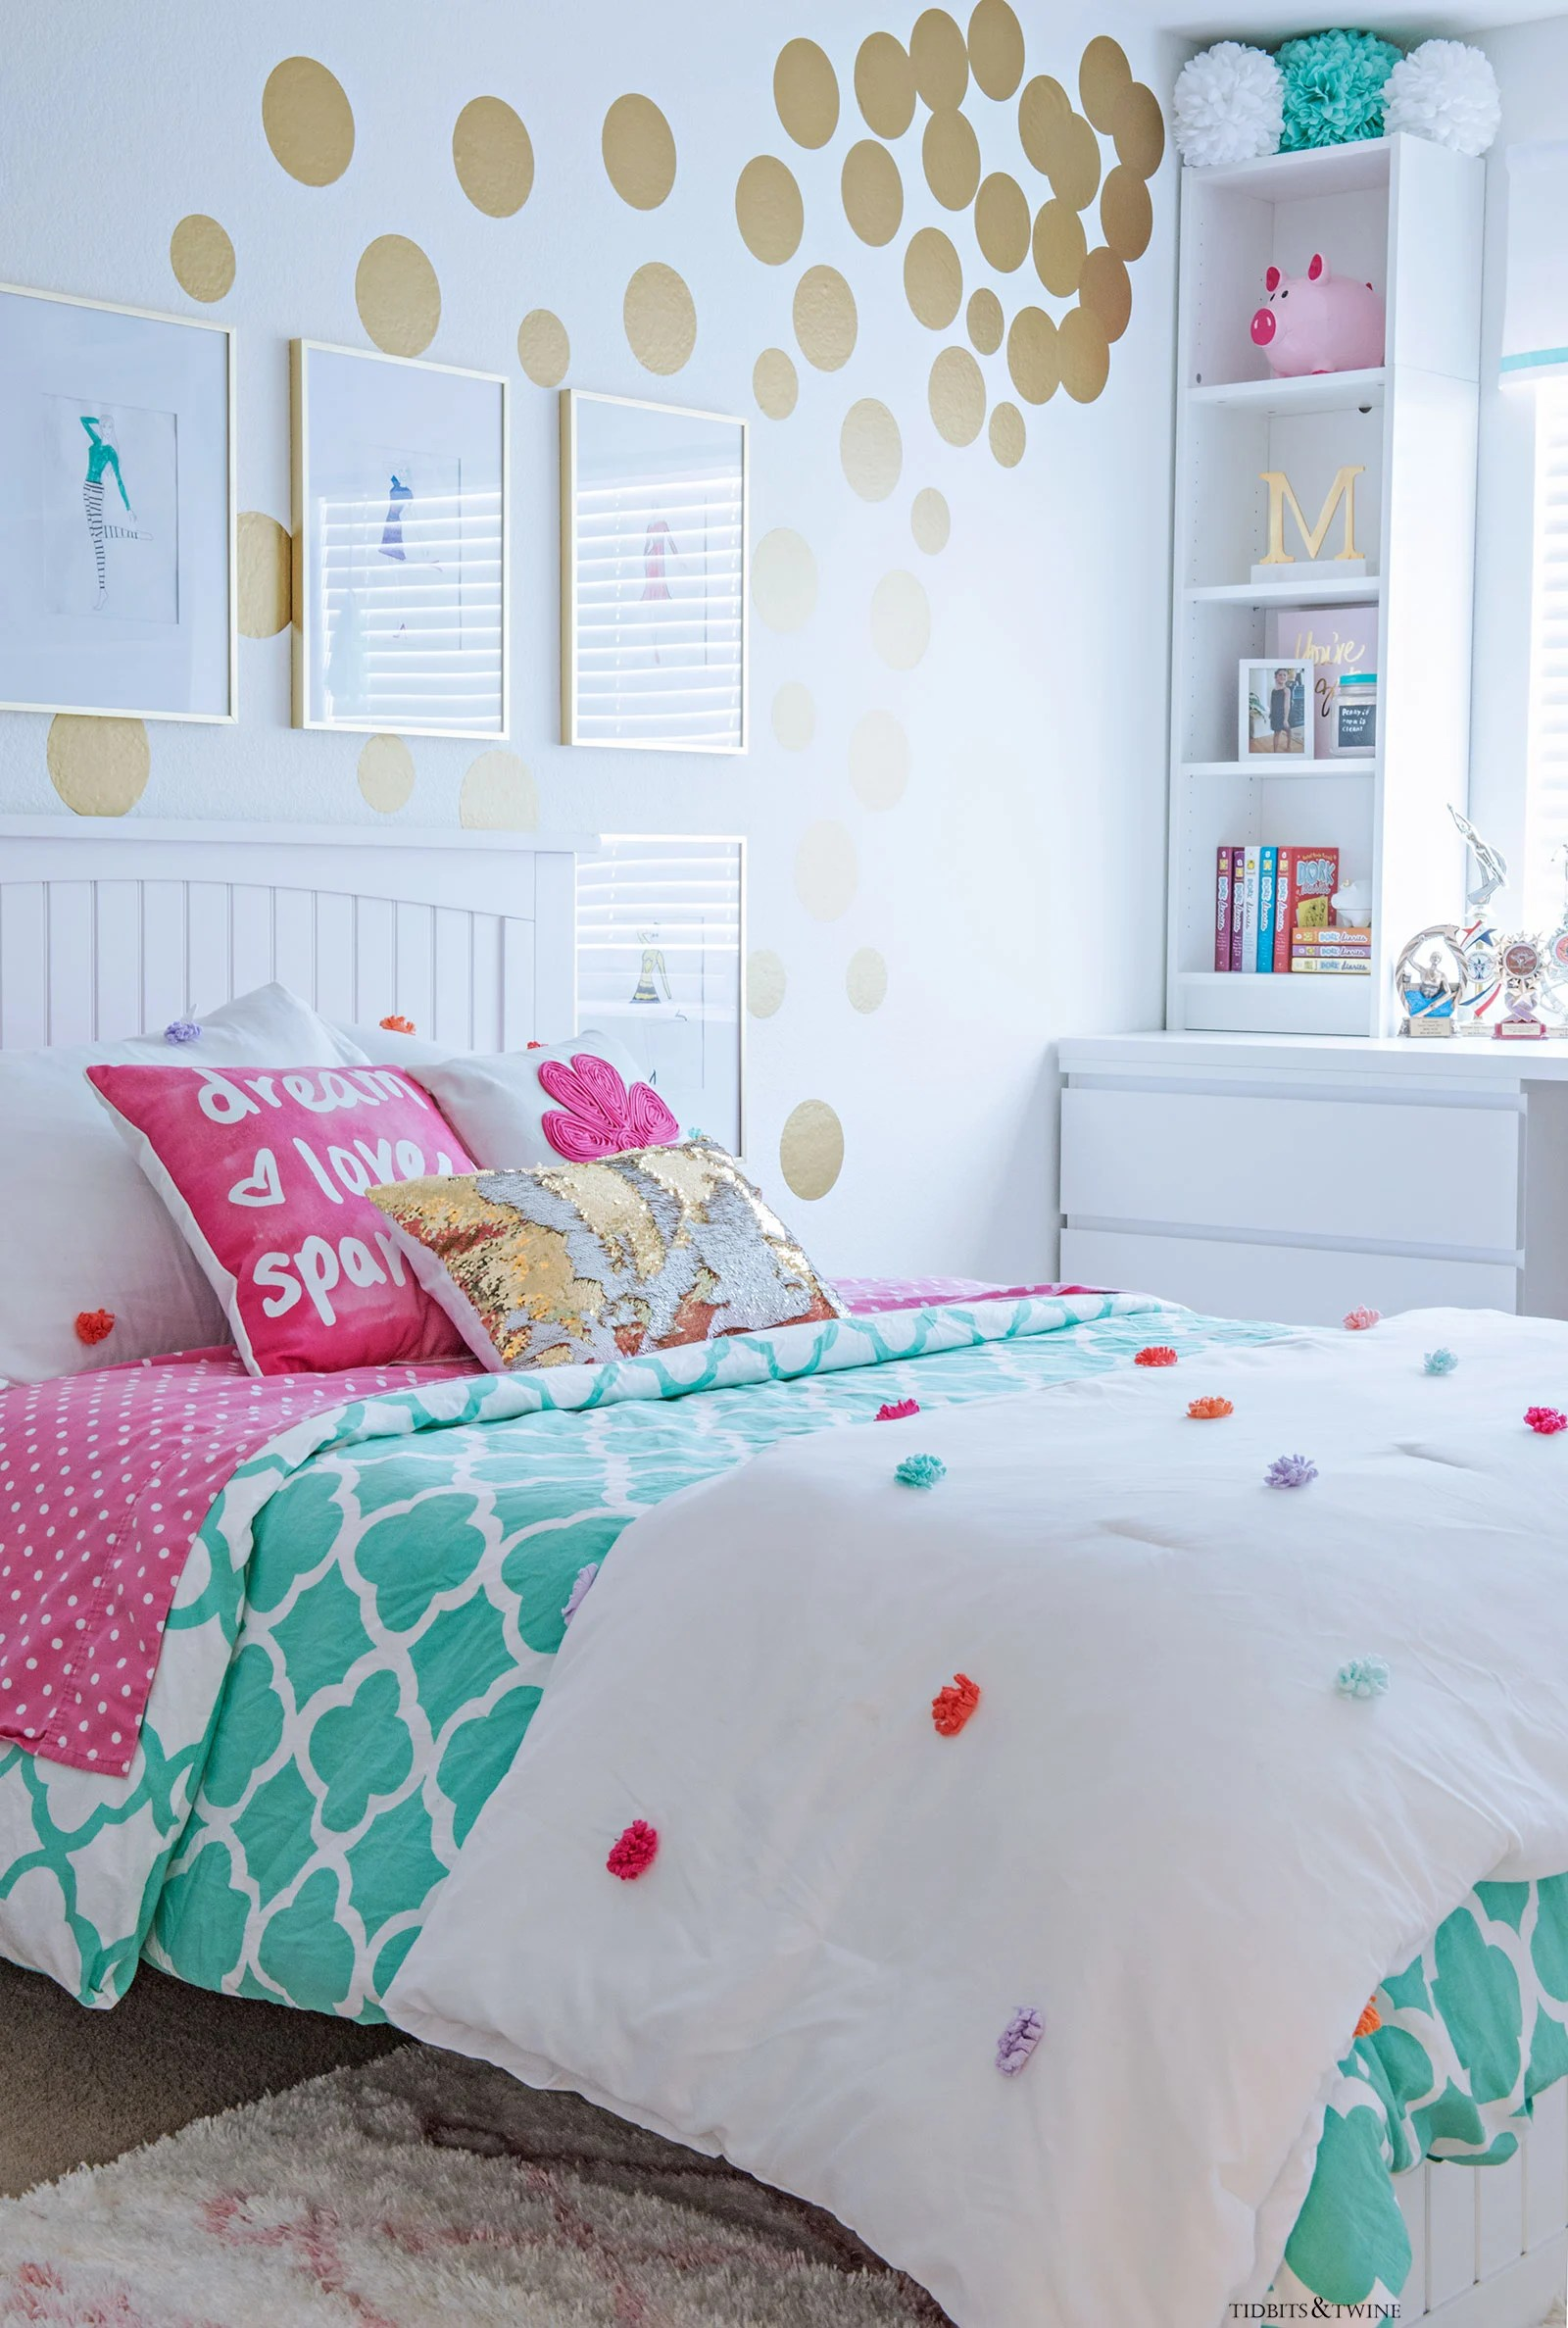 Tween Girl's Bedroom Makeover - REVEAL - TIDBITS&TWINE on Beautiful:9Ekmjwucuyu= Girls Room Decoration  id=60872